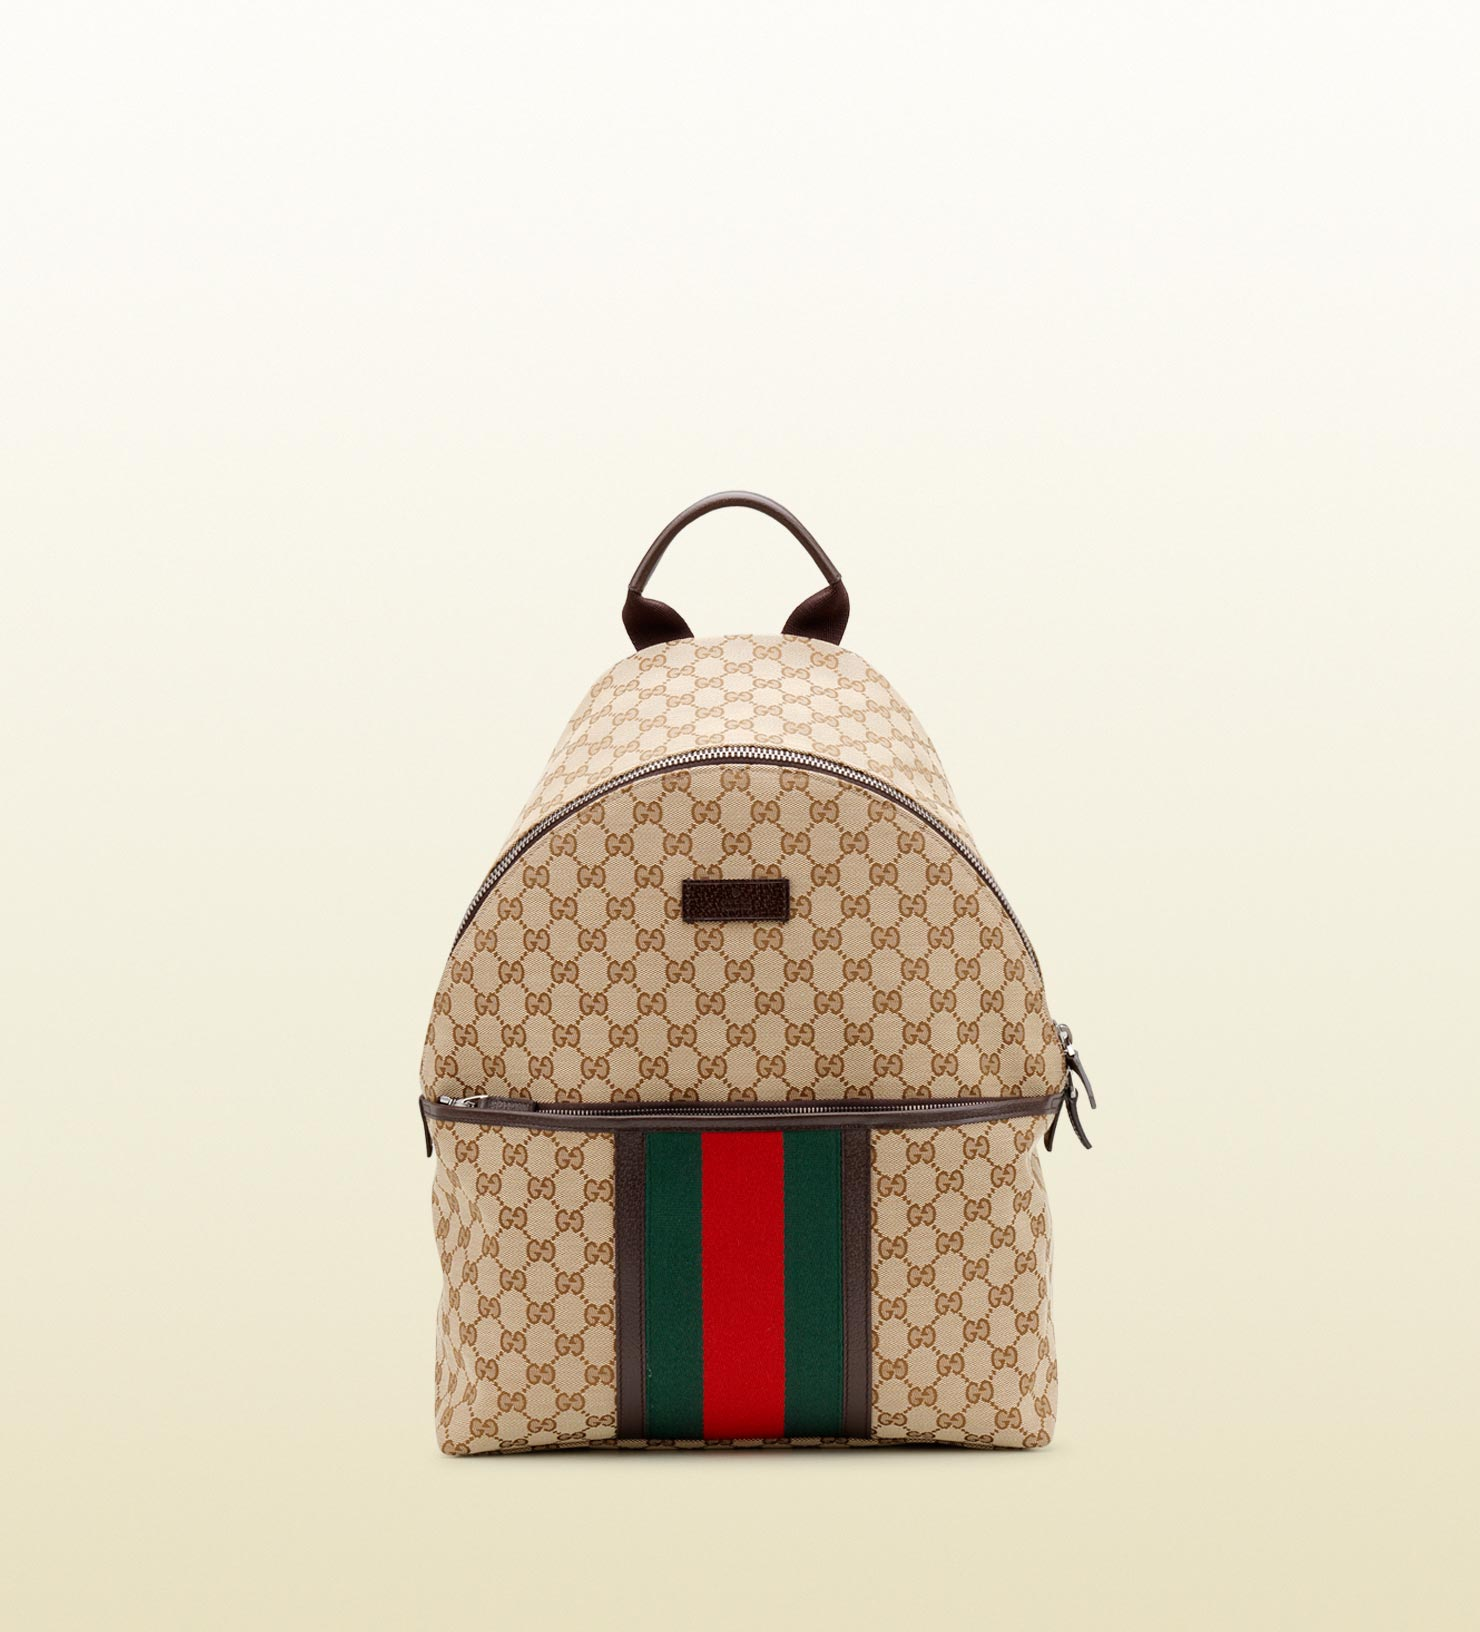 ... wholesale price 64aba bfd53 Lyst - Gucci Original Gg Canvas Backpack in  Natural for Men ... fe8f750924